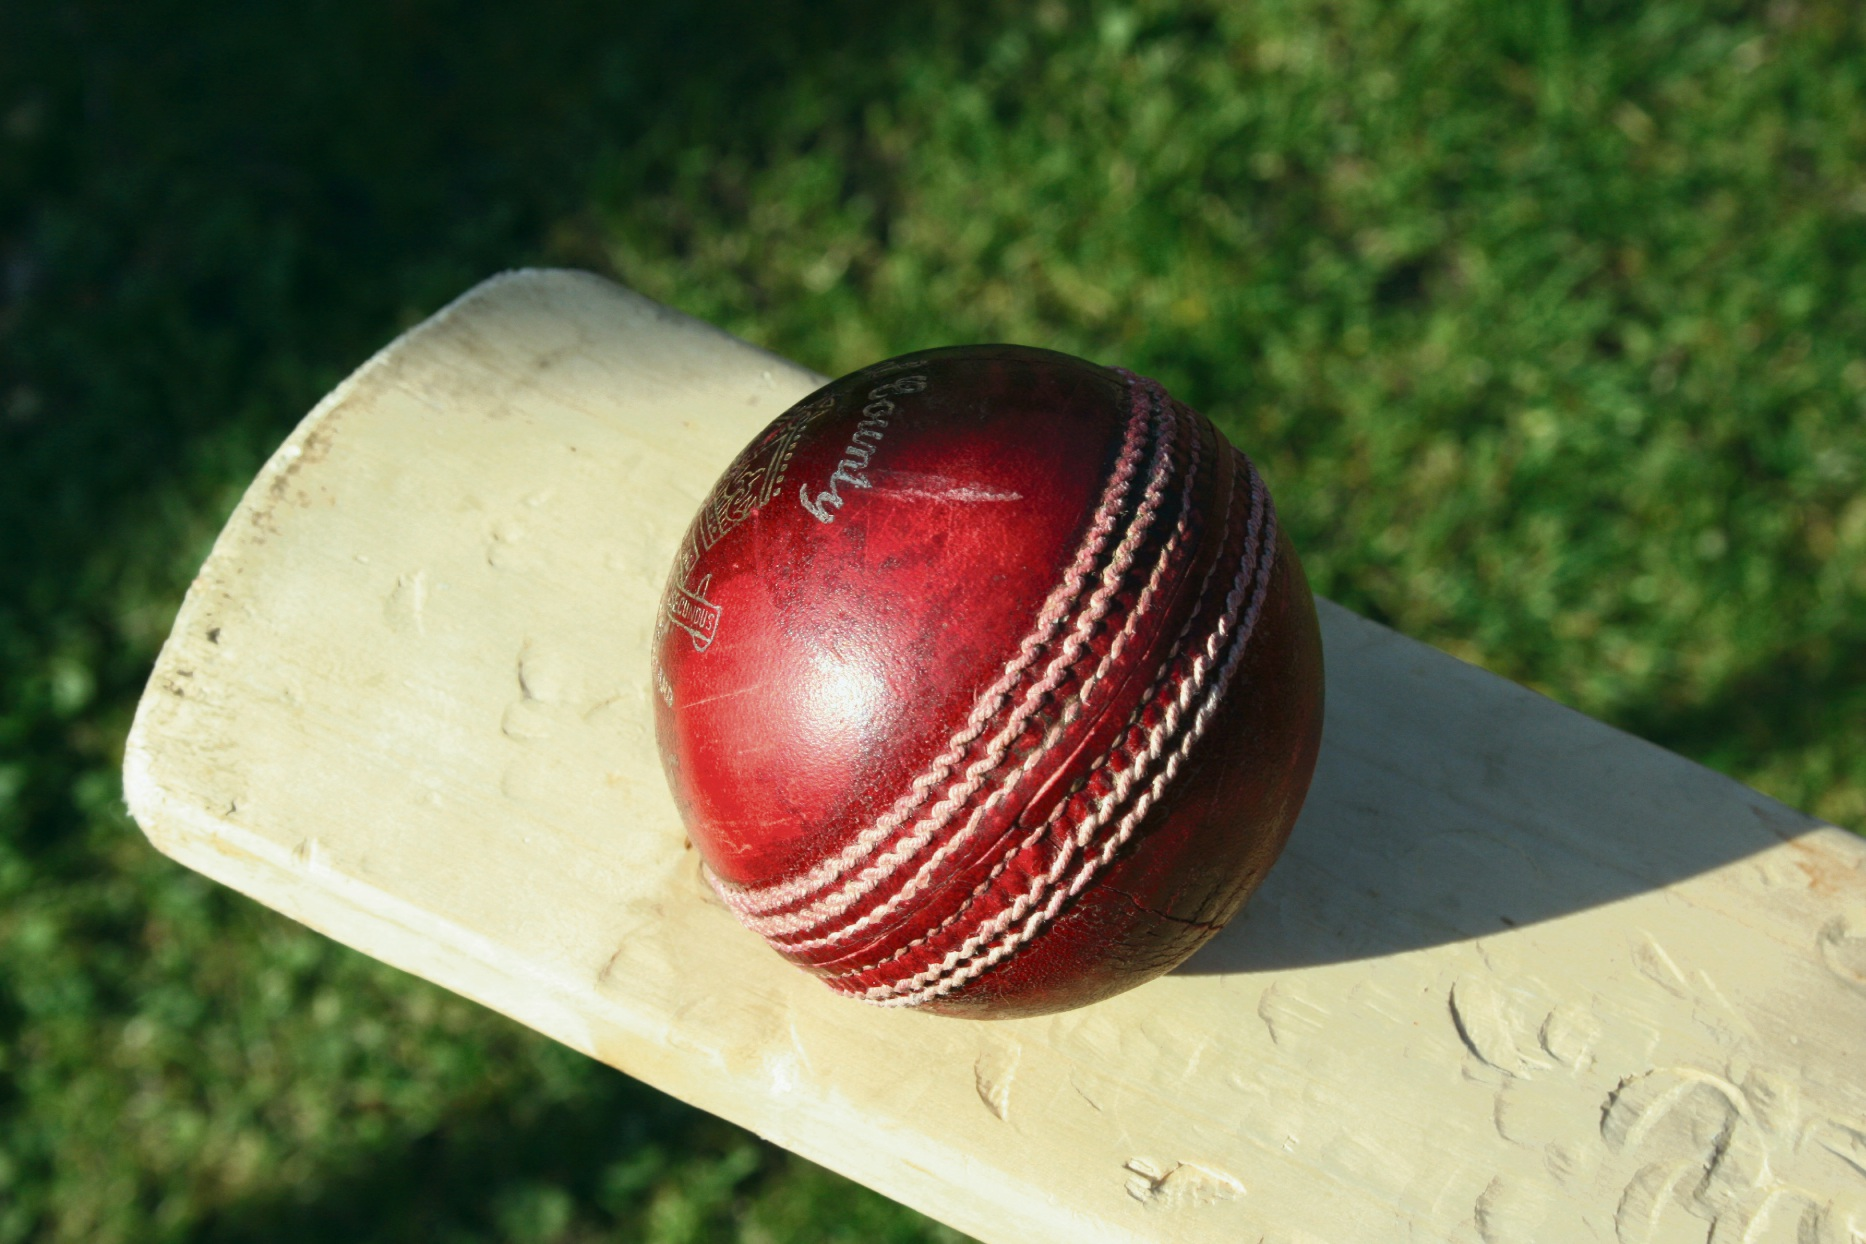 Premier Cricket: Mt Lawley back to earth with defeat to Subiaco Floreat